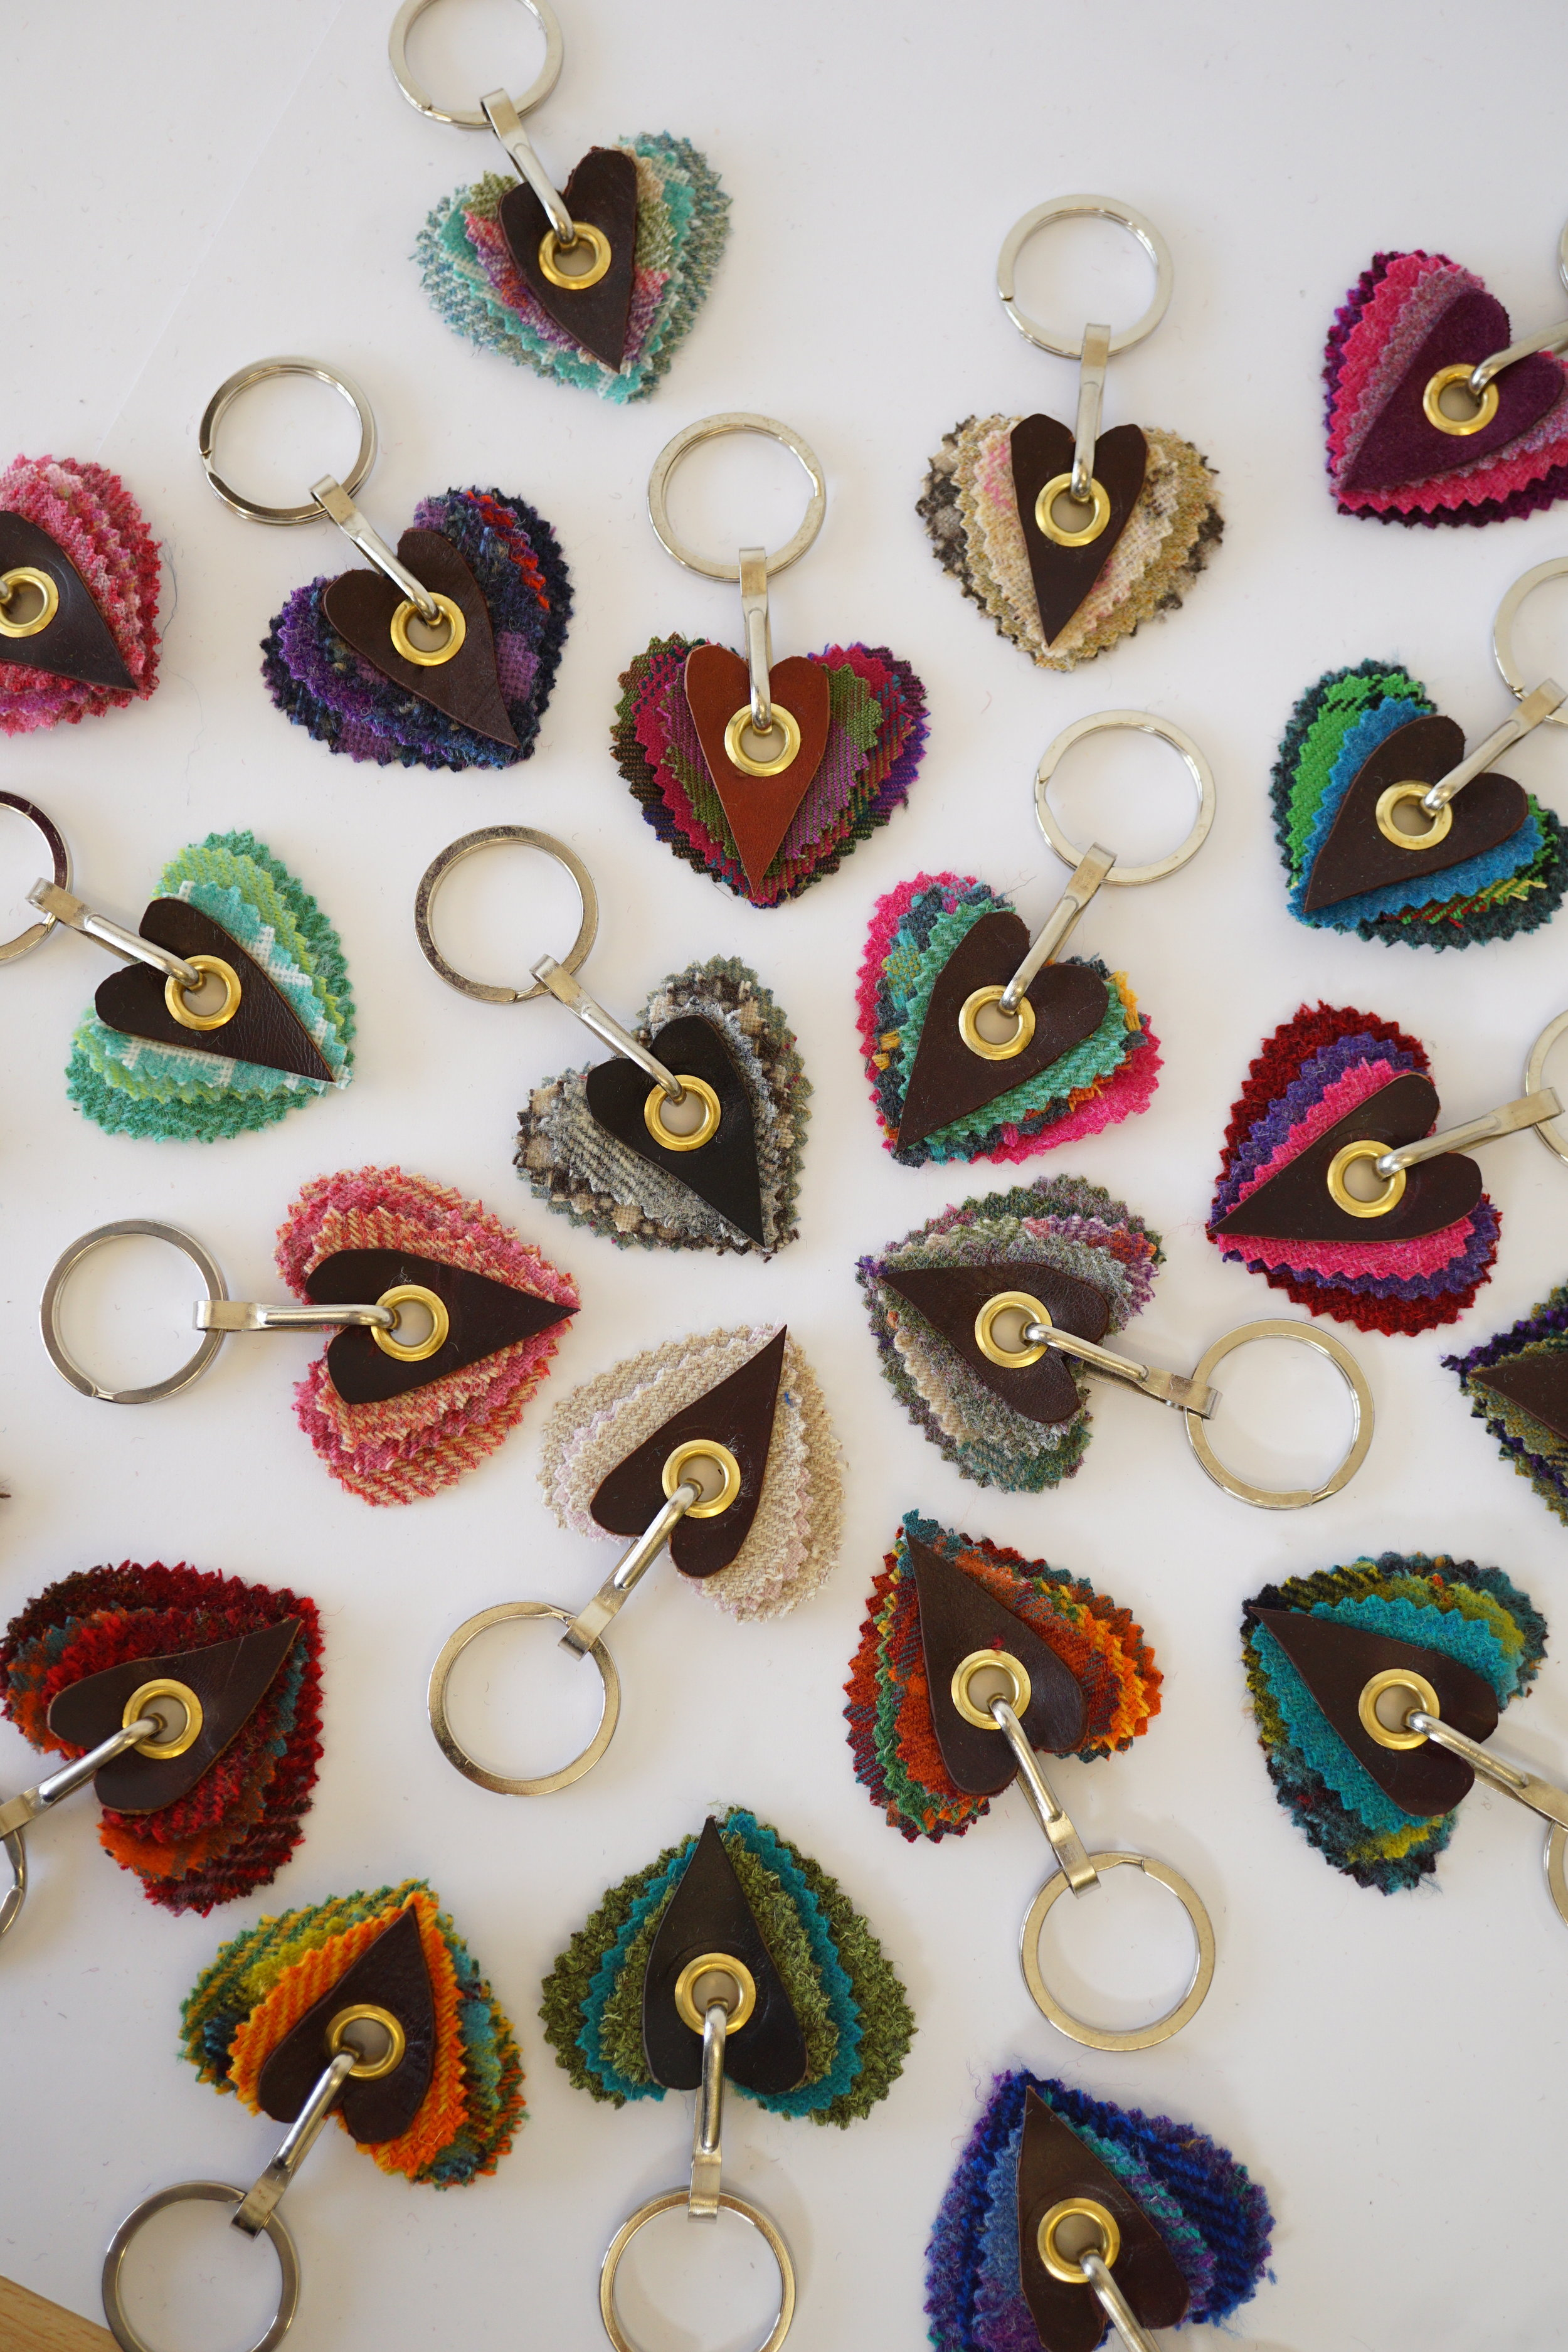 Keyrings - The Keyrings come as hearts or rectangle layers of fabric with upcycled leather and strong quality metal wear. They come packaged on a card with an envelope and a wee message about how precious your keys. They come packaged in a cellophane envelope. The fabrics are all locally sourced tartan and tweeds.